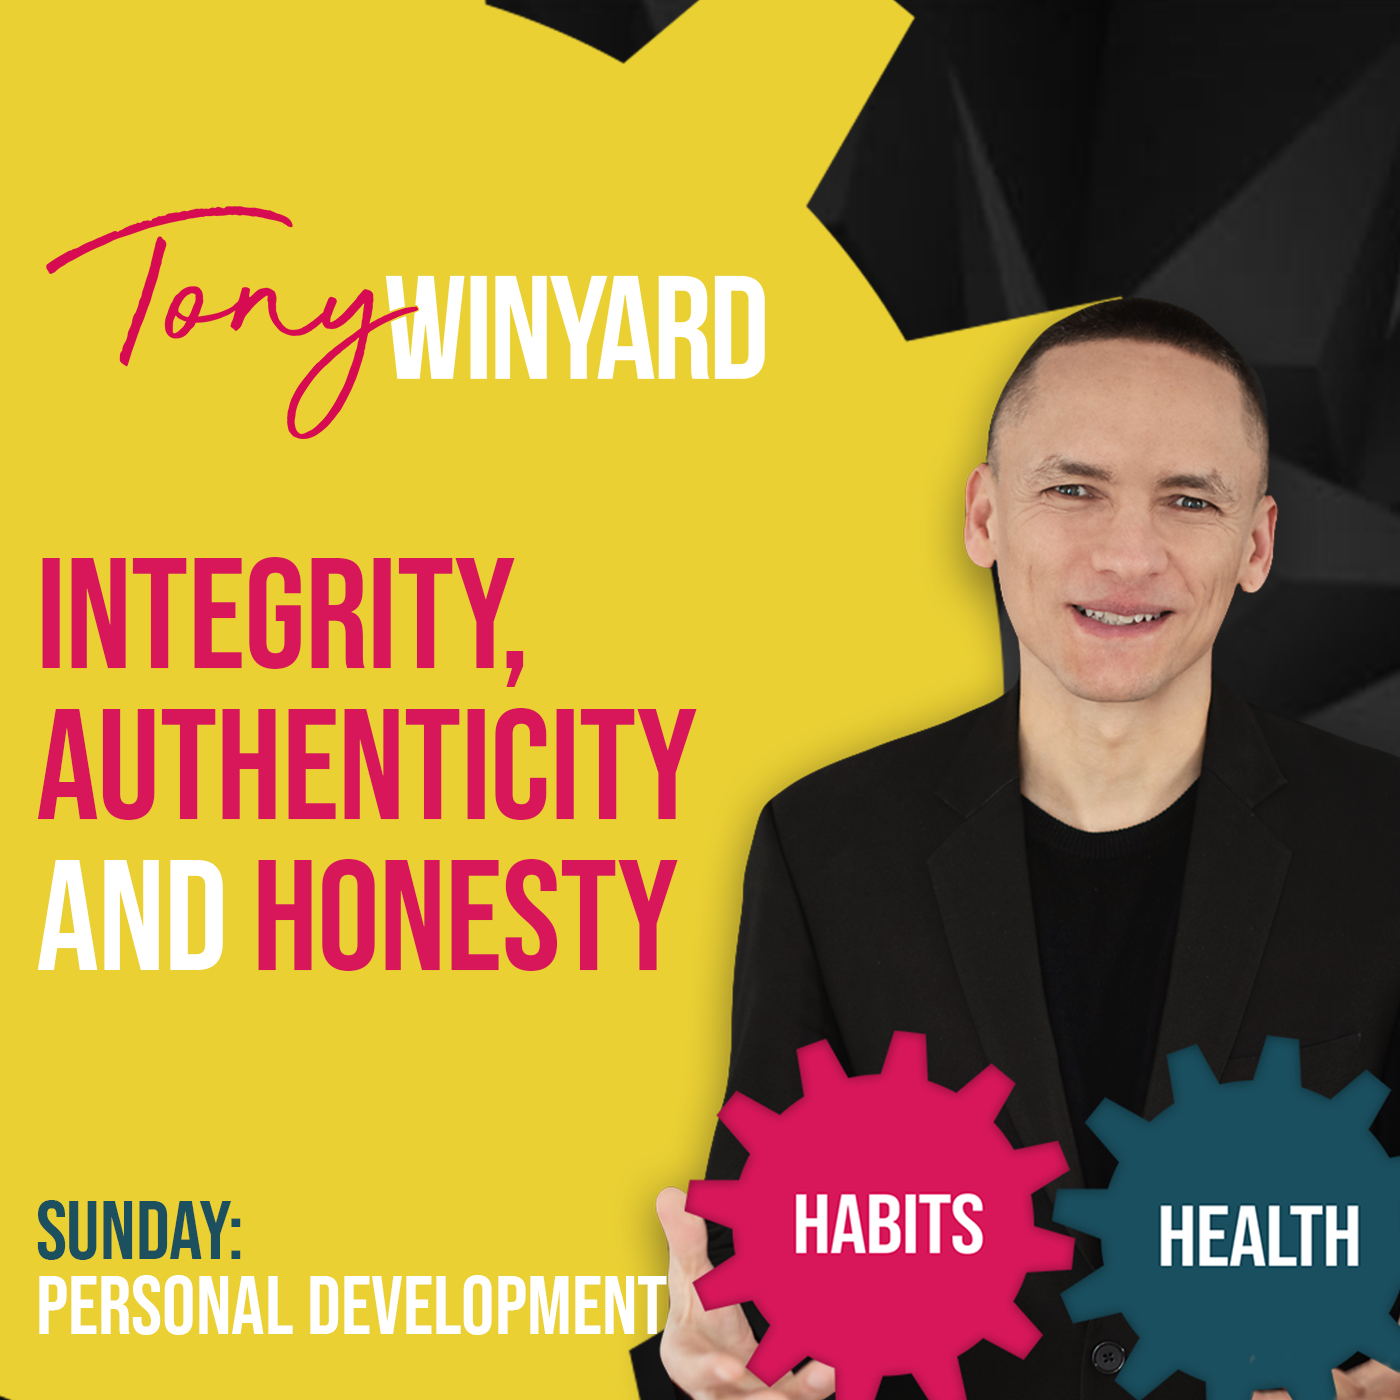 Integrity, Authenticity and Honesty